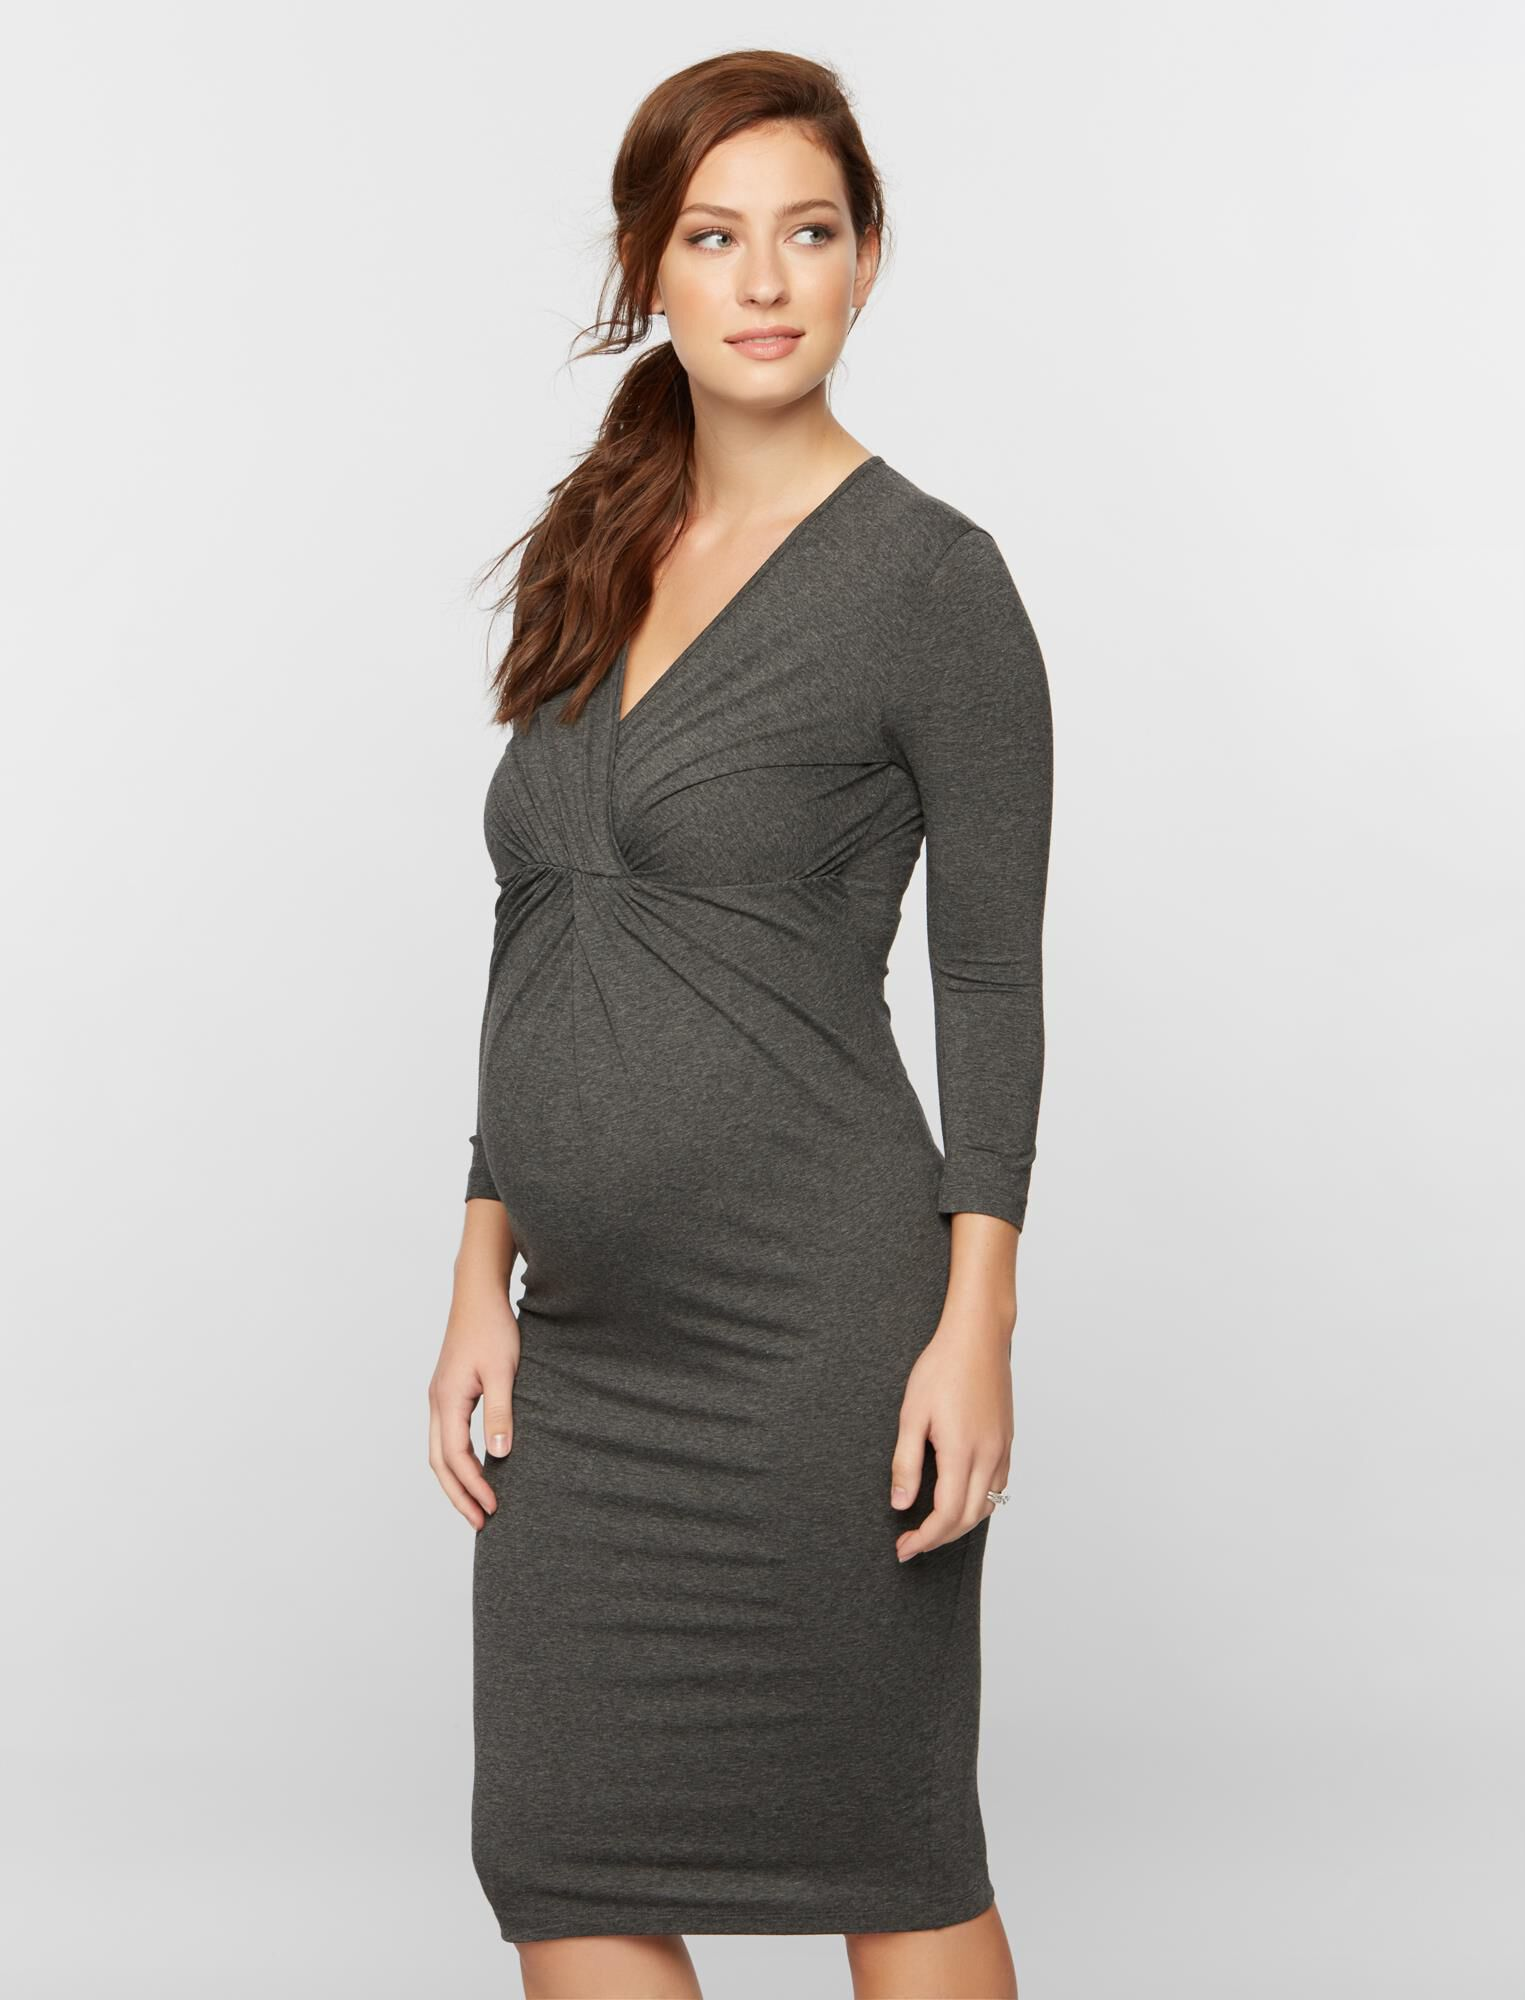 Isabella Oliver Relaxed Fit Maternity Dress